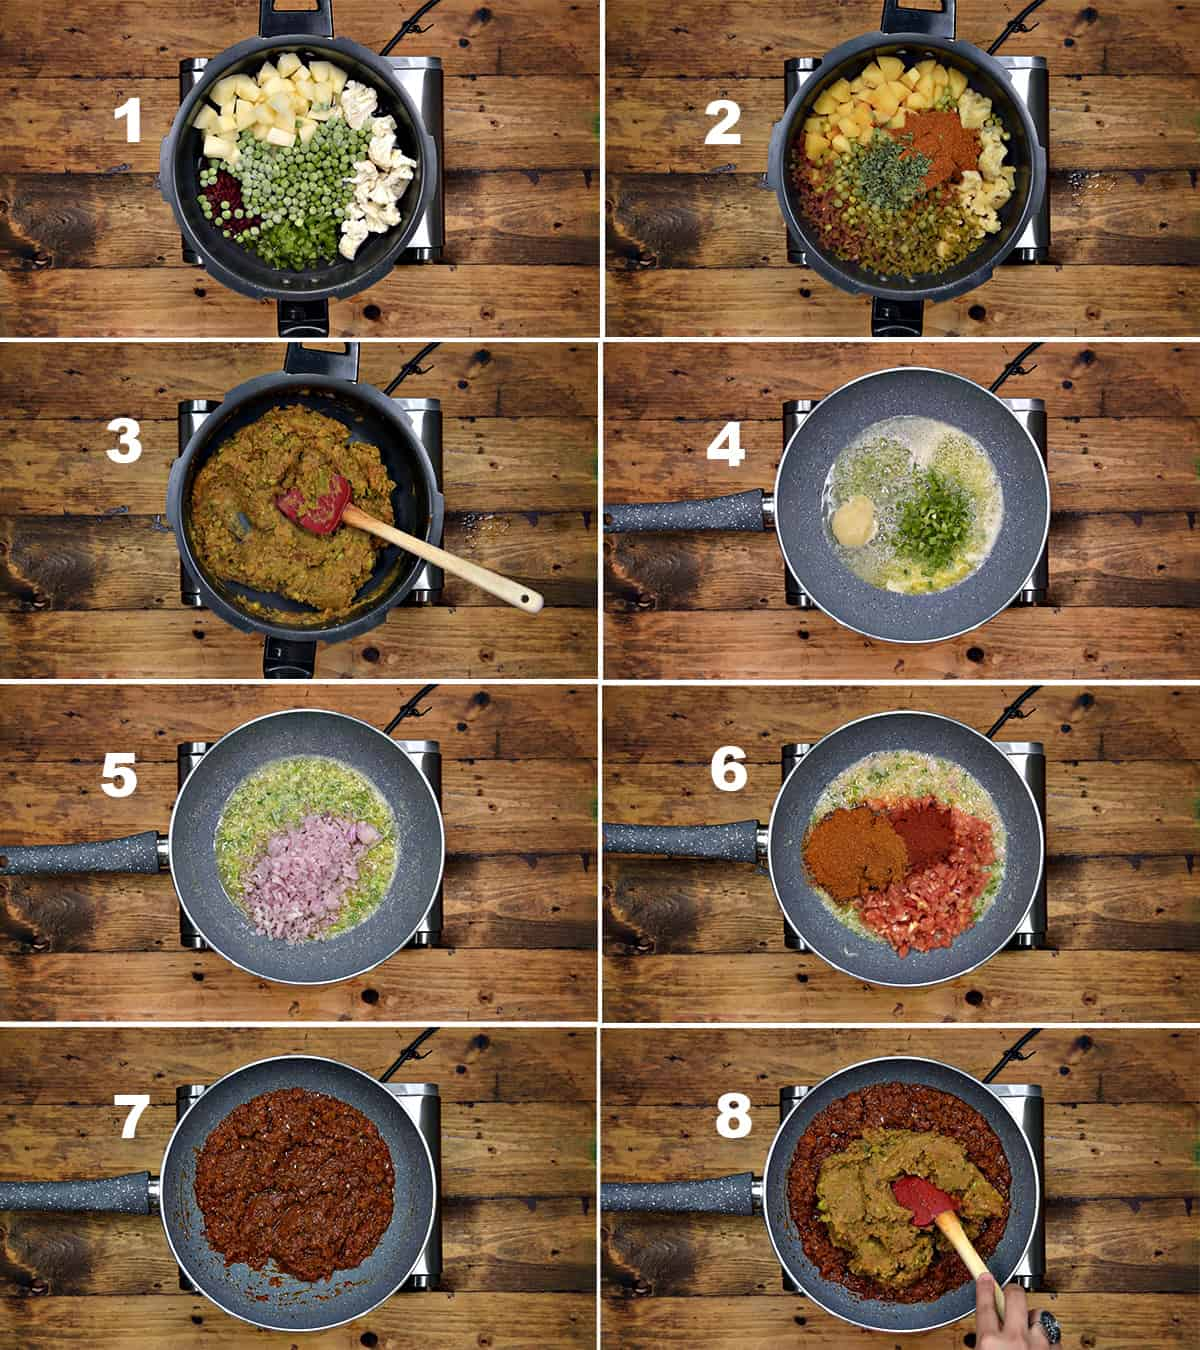 Step by Step picture collage showing how to make pav bhaji in pan at home.